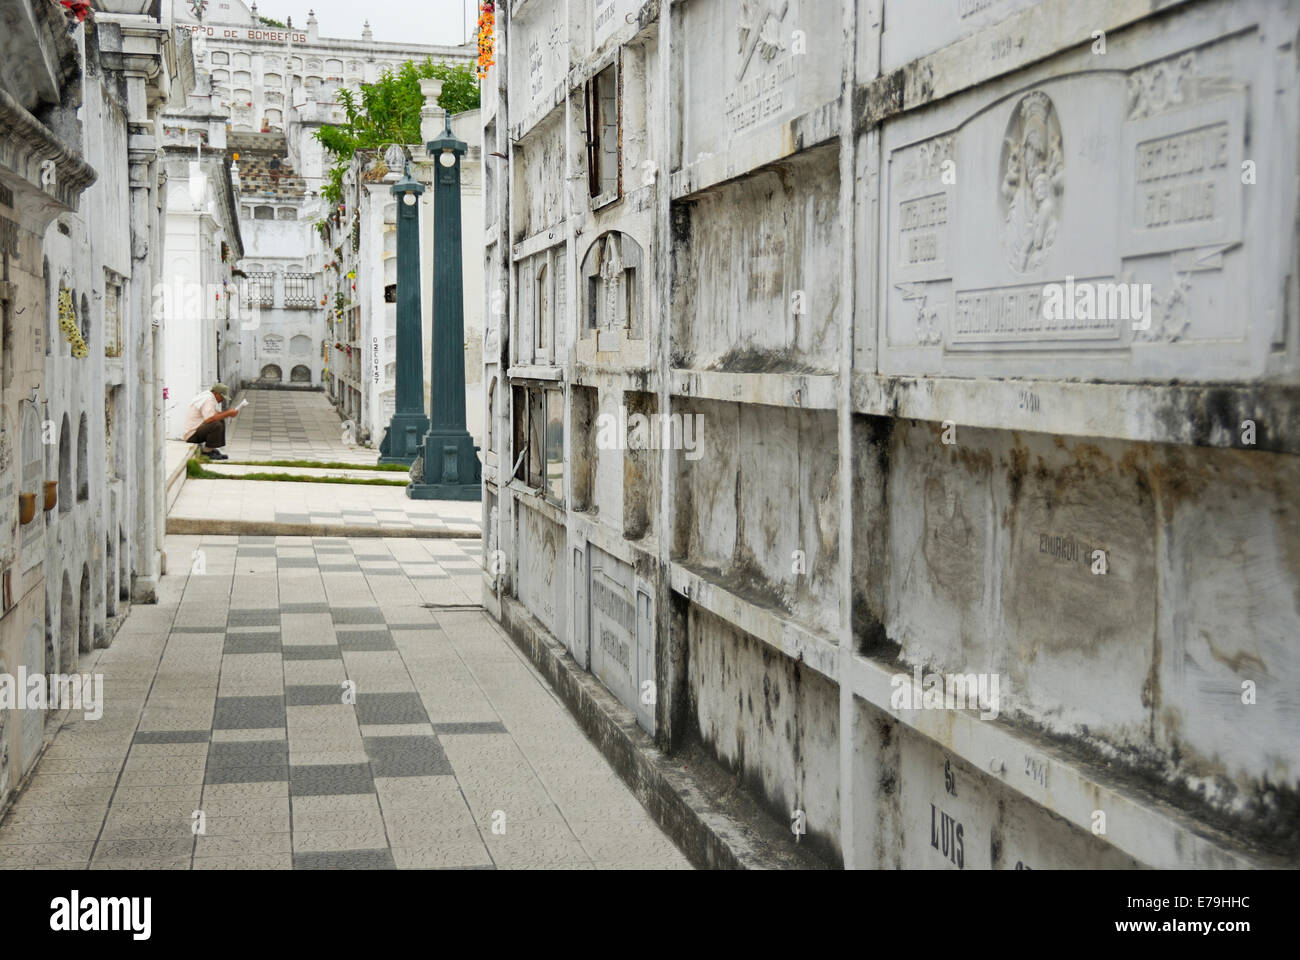 Graveyard at La Ciudad Blanca or White City cemetery, Guayaquil, Ecuador, South America - Stock Image